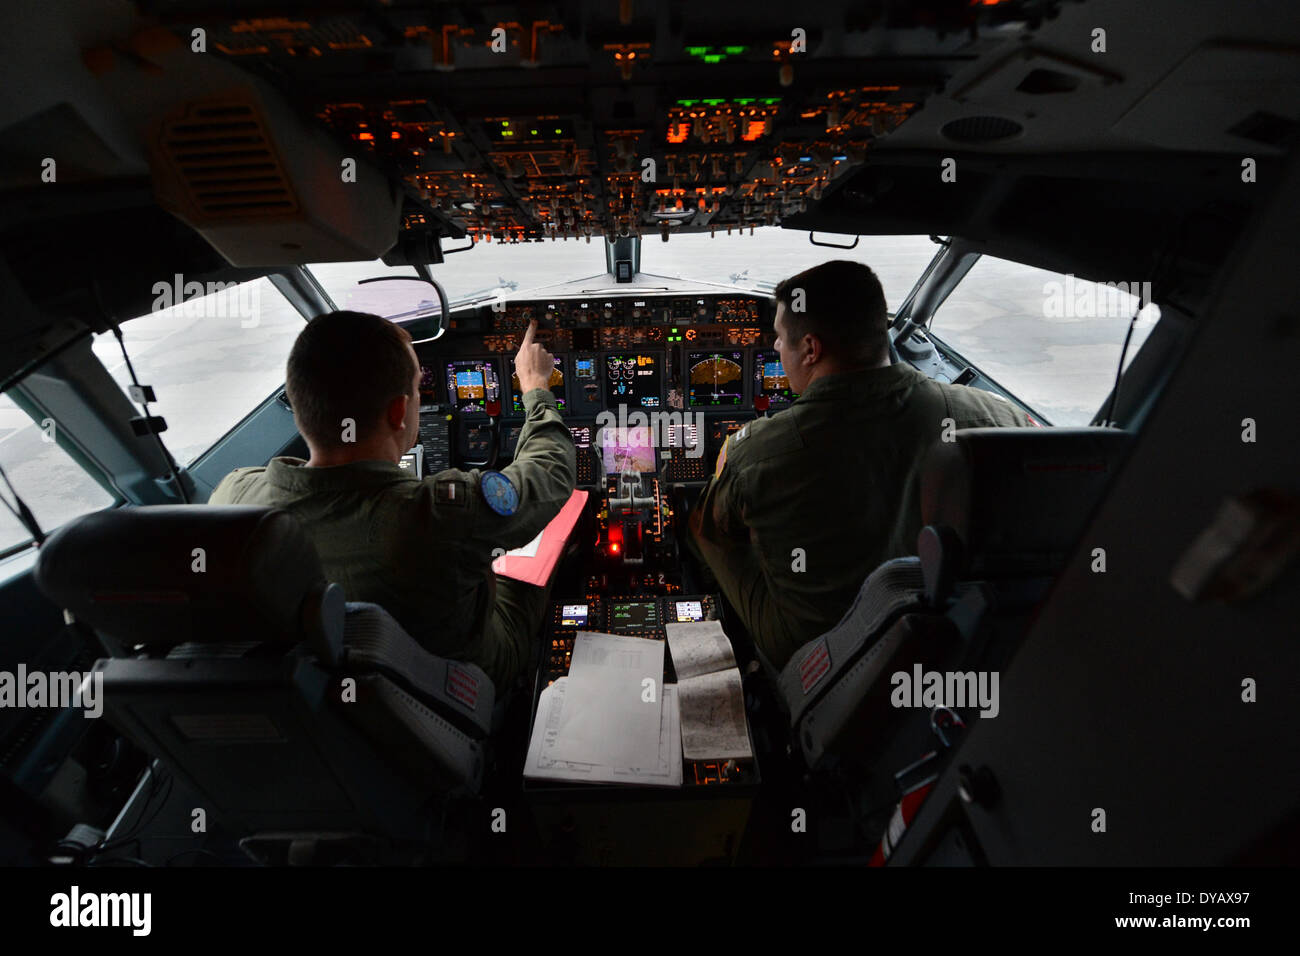 Nick Horton, left, and Lt. Clayton Hunt, naval aviators assigned to Patrol Squadron (VP) 16, perform preflight checks in the flight station of a P-8A Poseidon prior to a mission to assist in search and rescue operations for Malaysia Airlines flight MH370. VP-16 is deployed in the U.S. 7th Fleet area of responsibility supporting security and stability in the Indo-Asia-Pacific region. (U.S. Navy photo by Chief Mass Communication Specialist Keith DeVinney/Released) - Stock Image